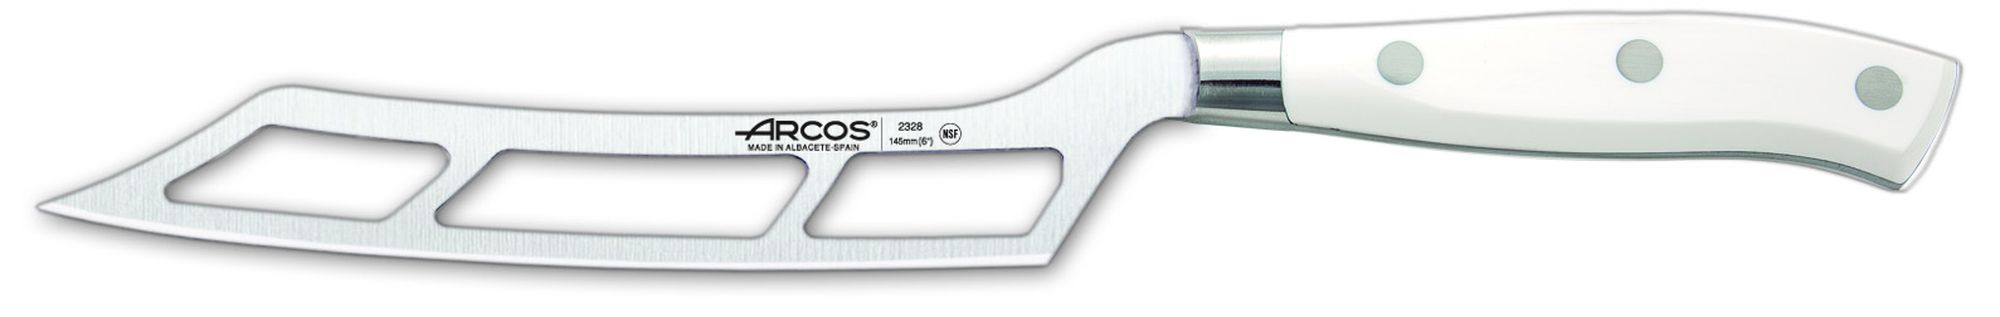 Cheese Knife Arcos ref.: 232824